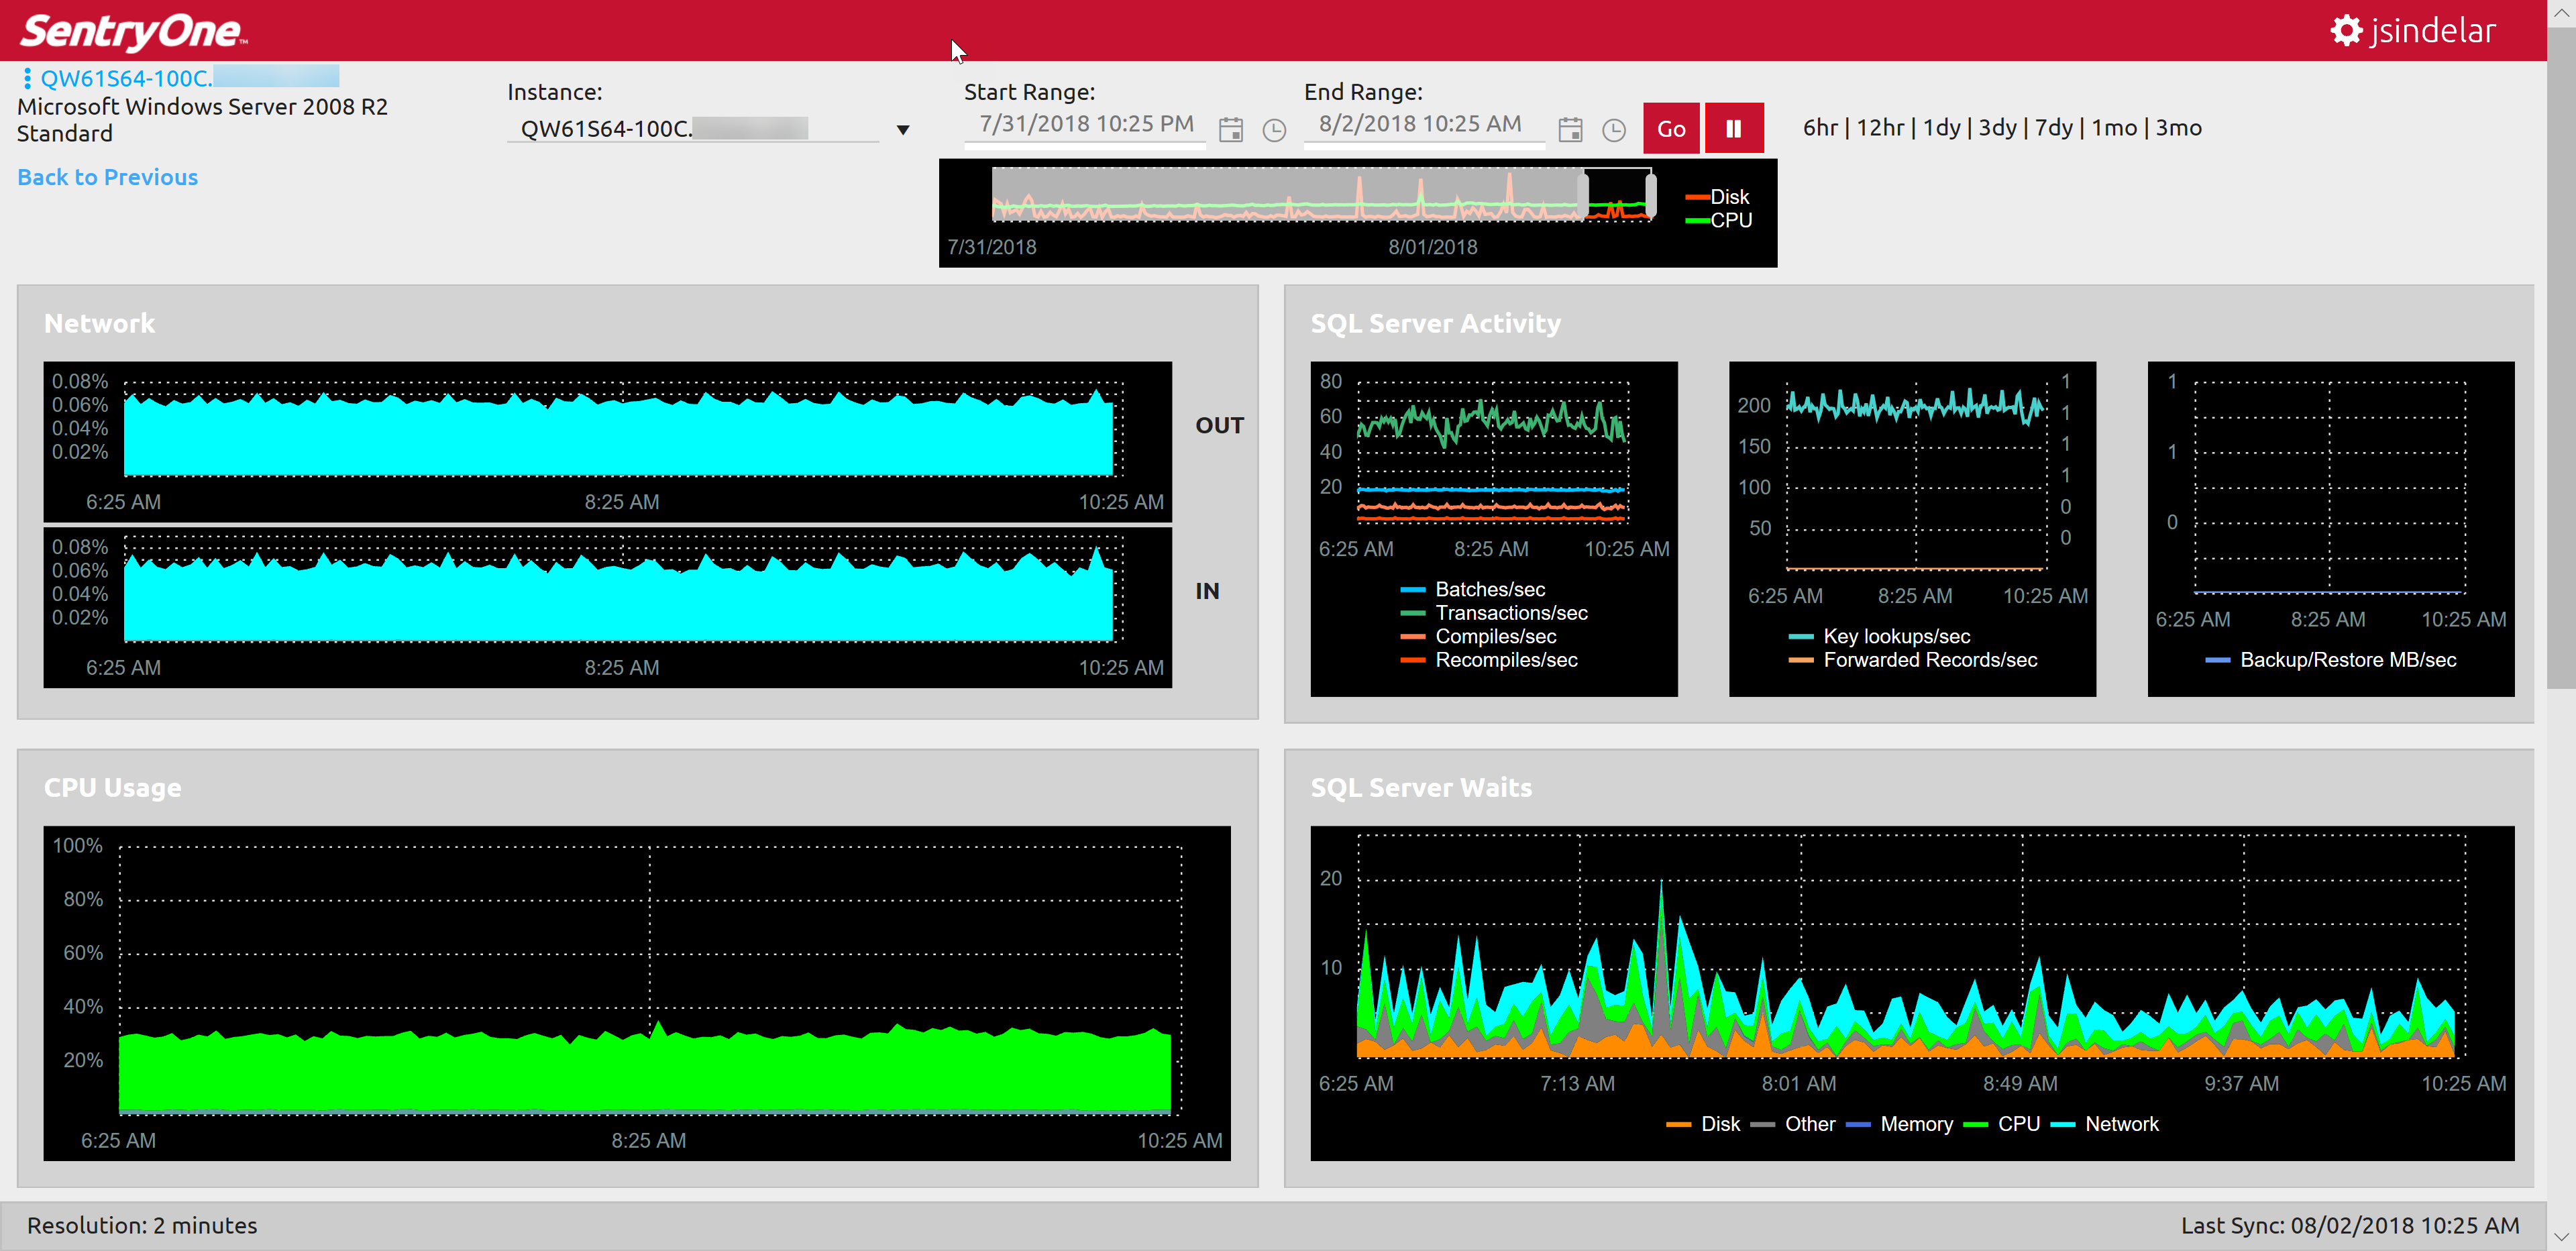 SentryOne Cloud Dashboard